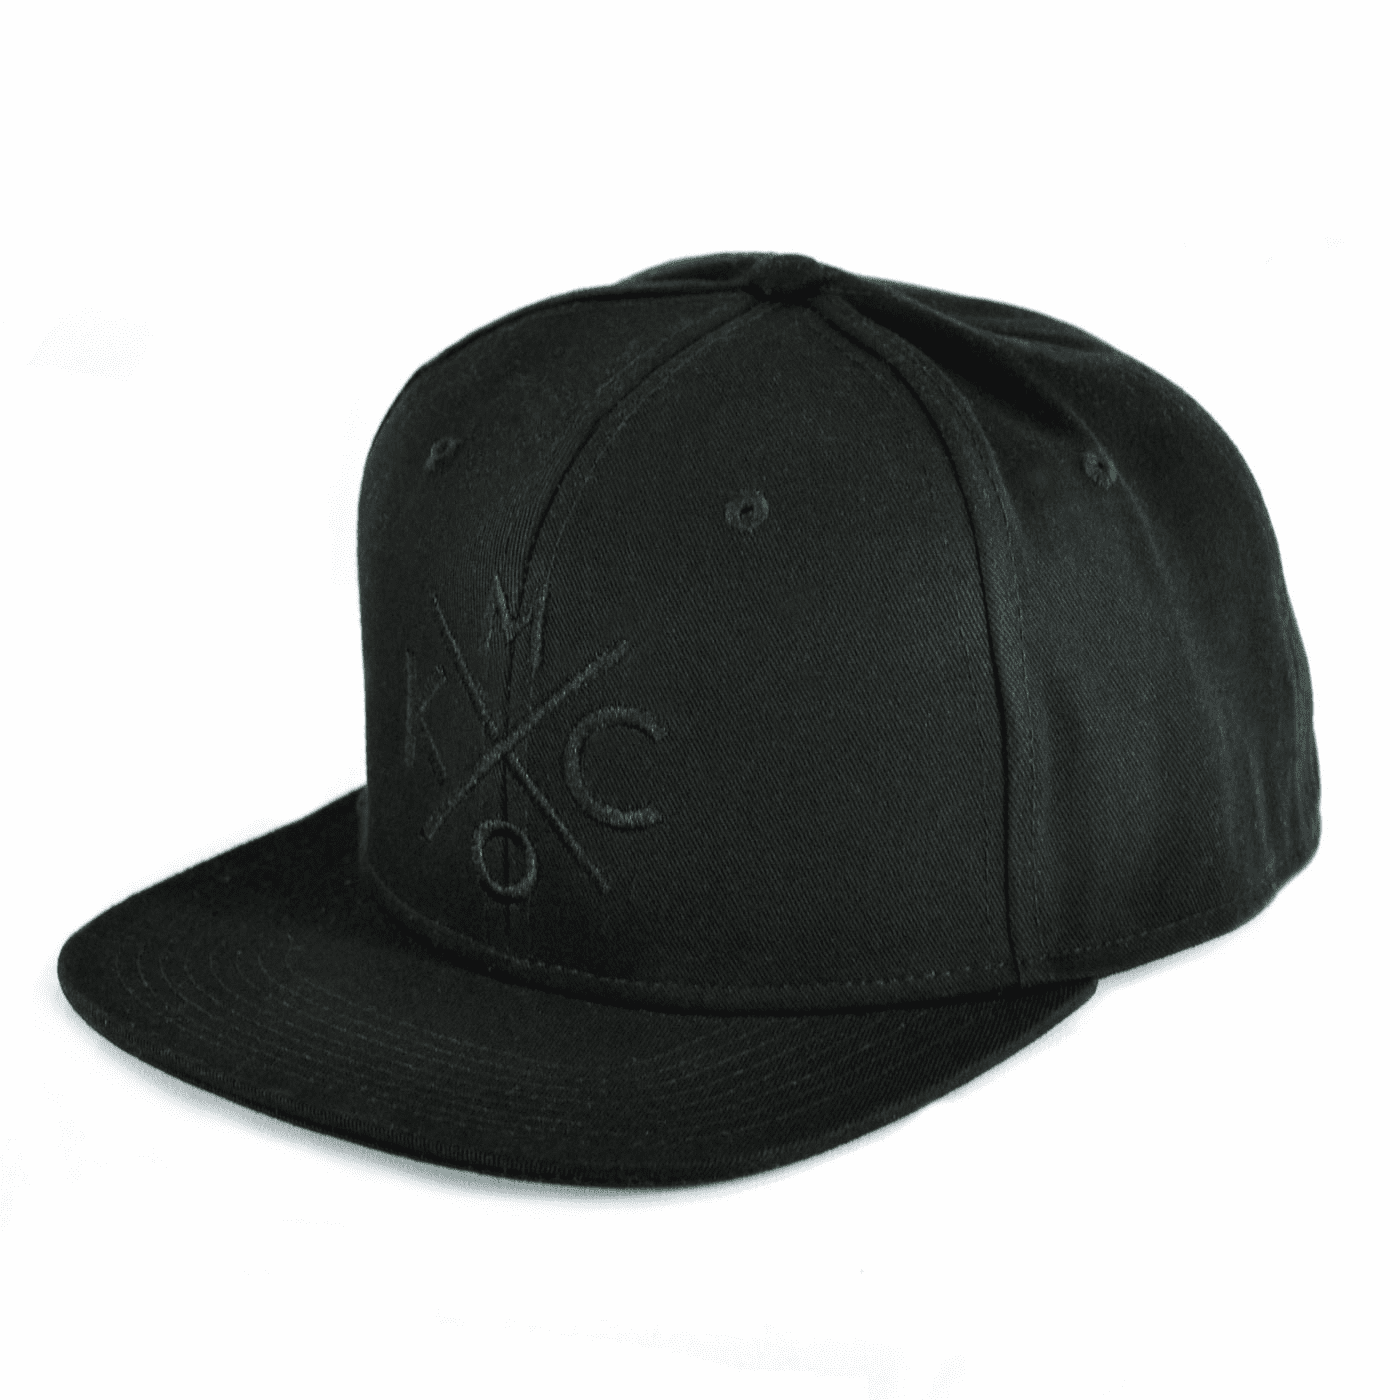 KCMO Black/Black Flat Bill Hat